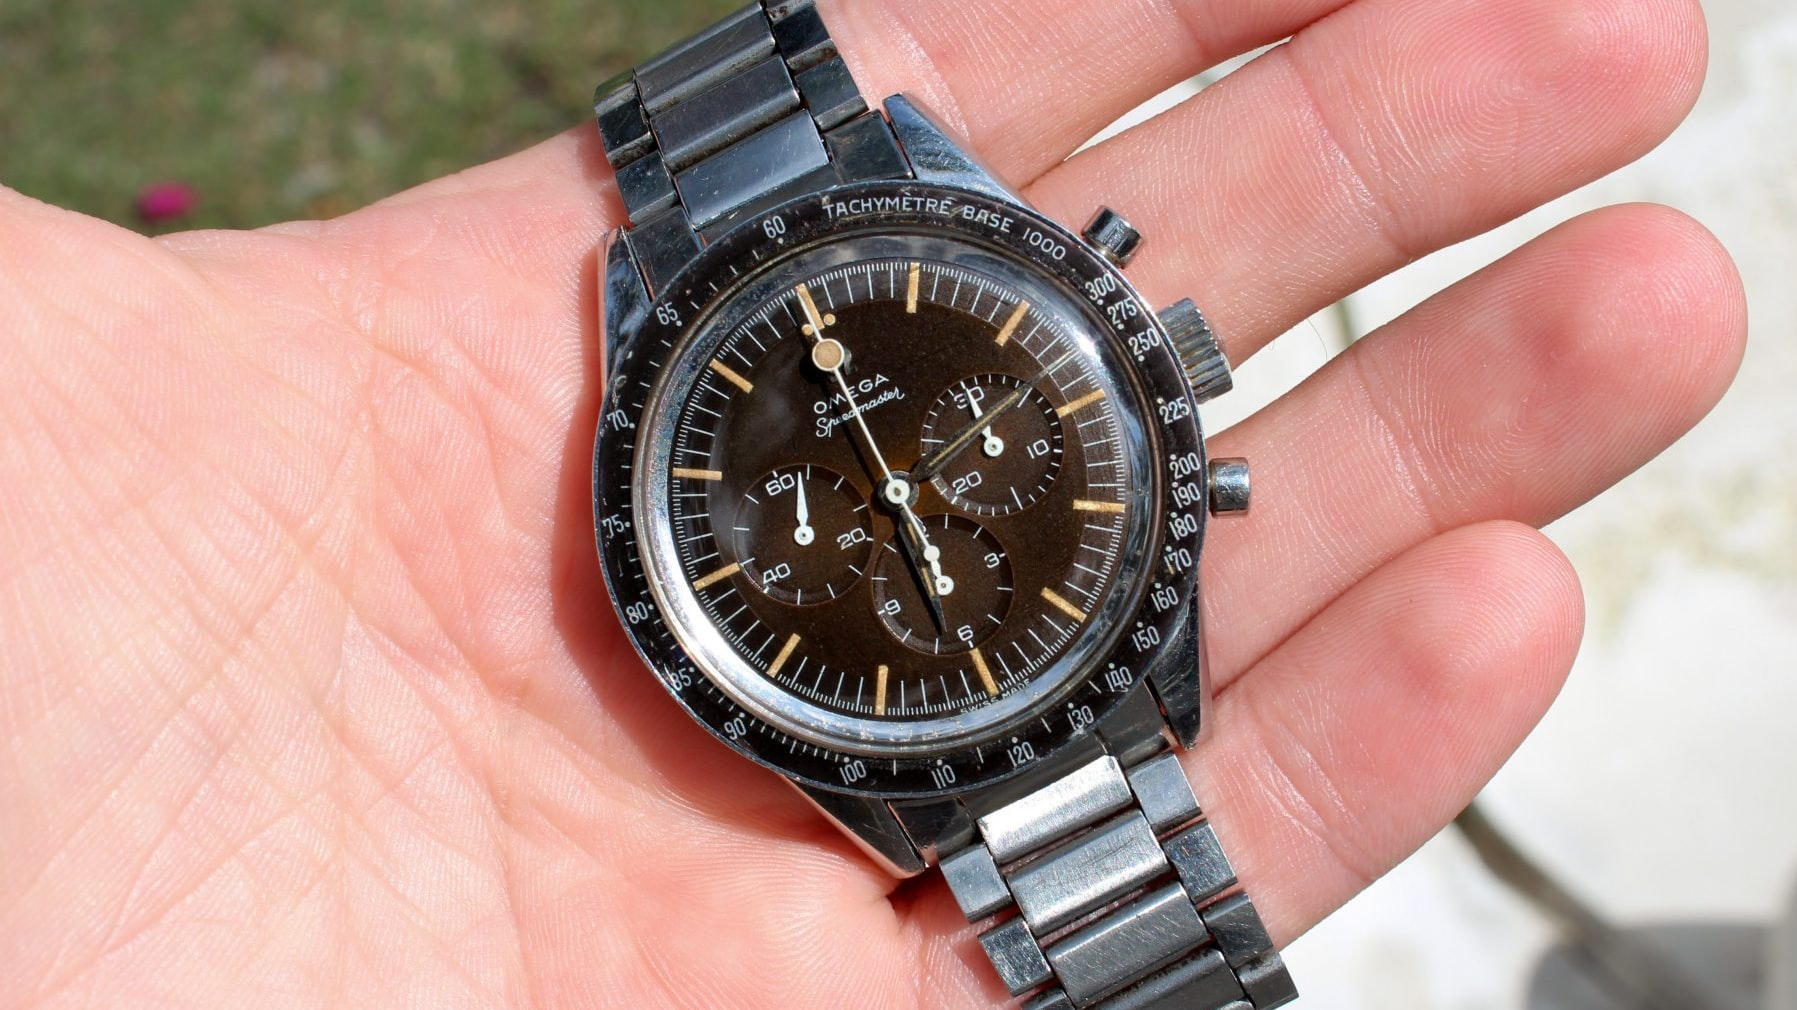 Bring a Loupe: A Heuer Camaro Ref. 7220, A Pair Of Jaeger-LeCoultre Atmos Clocks, And An Omega Speedmaster Ref. 2998-2